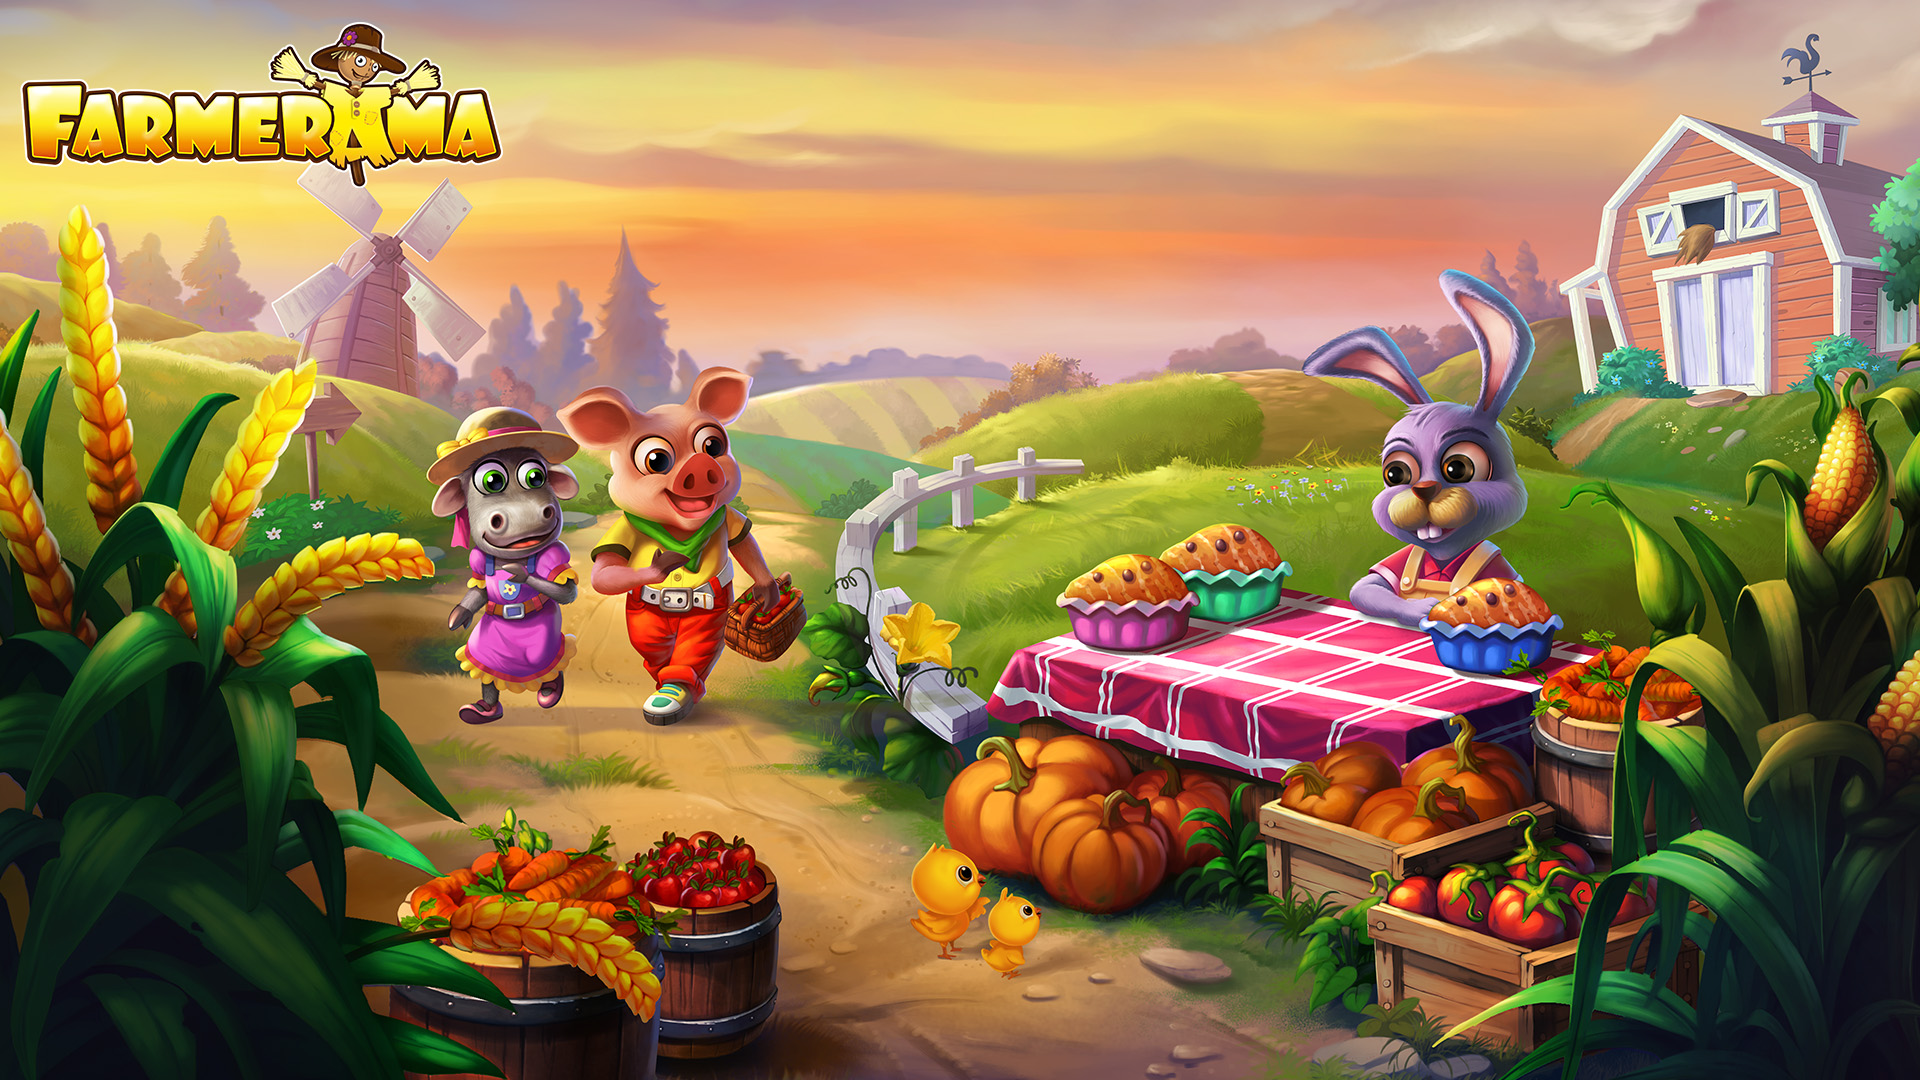 Farmerama_Wallpaper_2.jpg